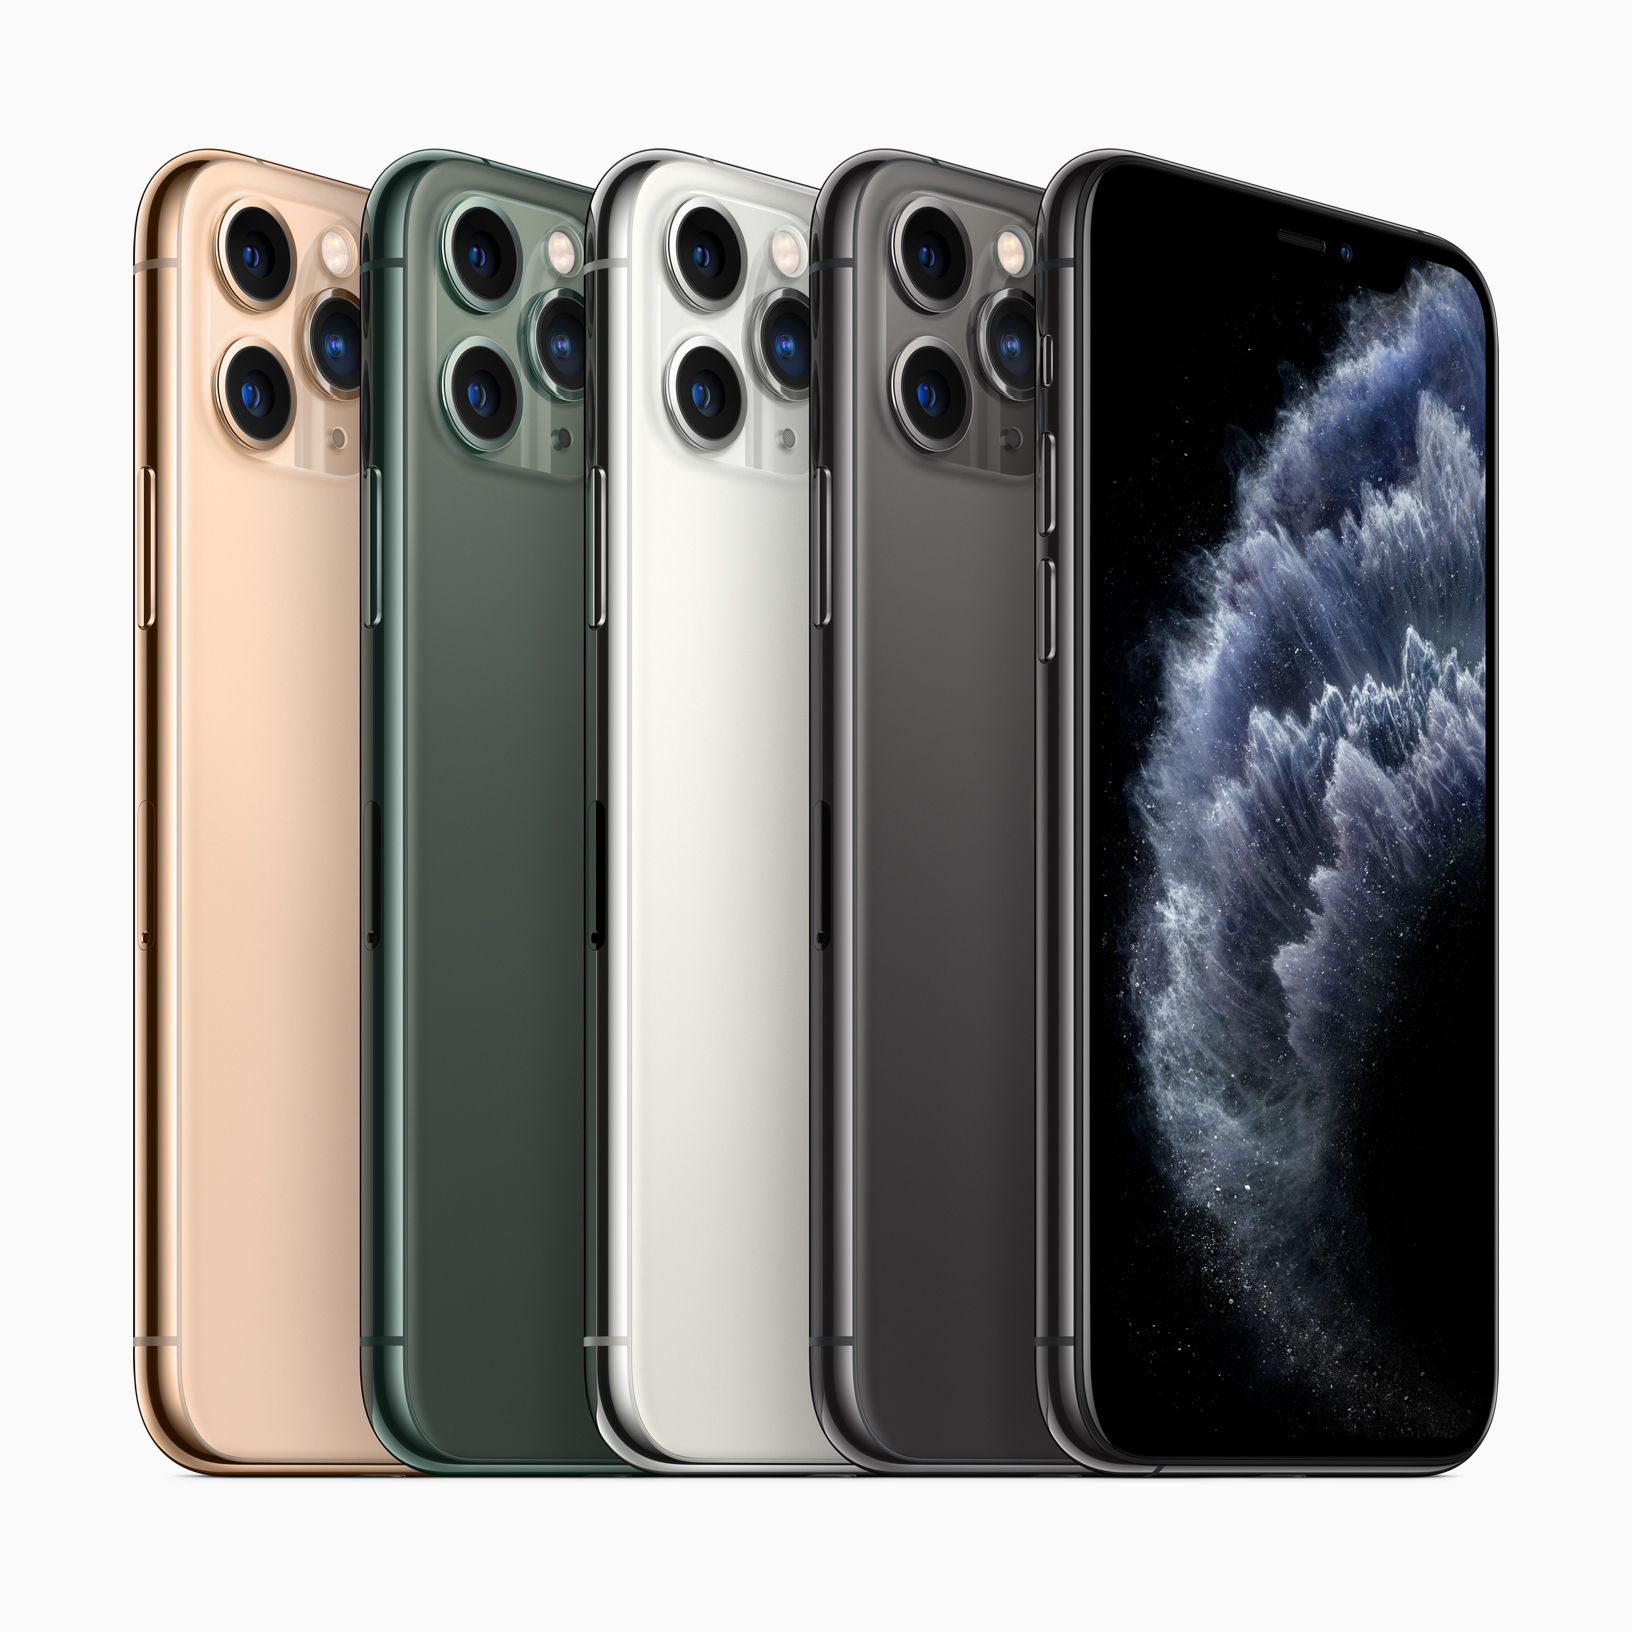 Ming-Chi Kuo: iPhone 11 Demand Better Than Expected - Strong Interest in New Colors